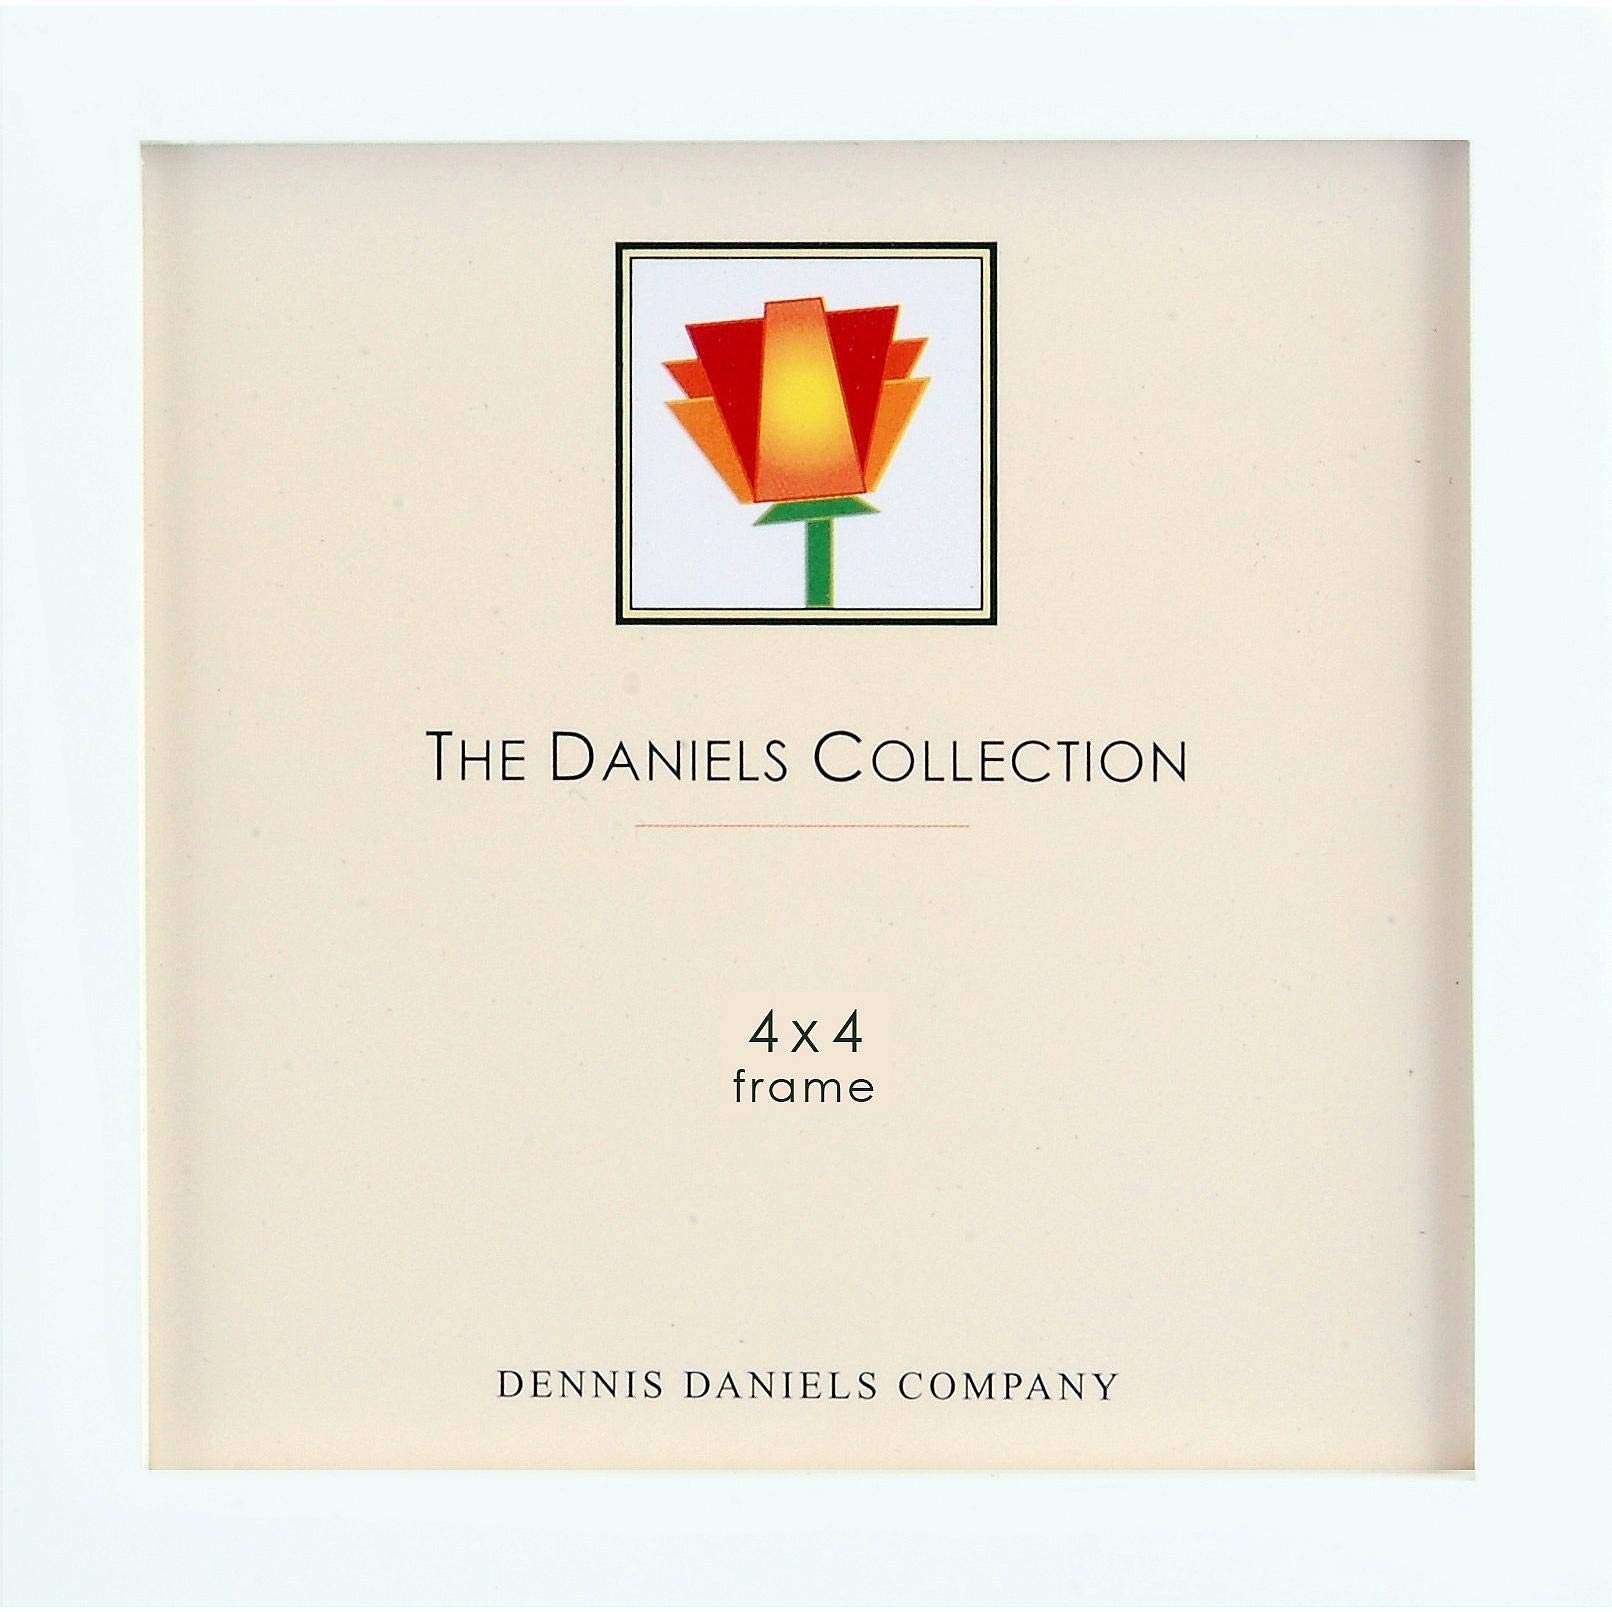 The Original Daniels W41 Square Corner Gallery Woods Bright White Finish Square 4x4 Frame by Dennis Daniels - 4x4